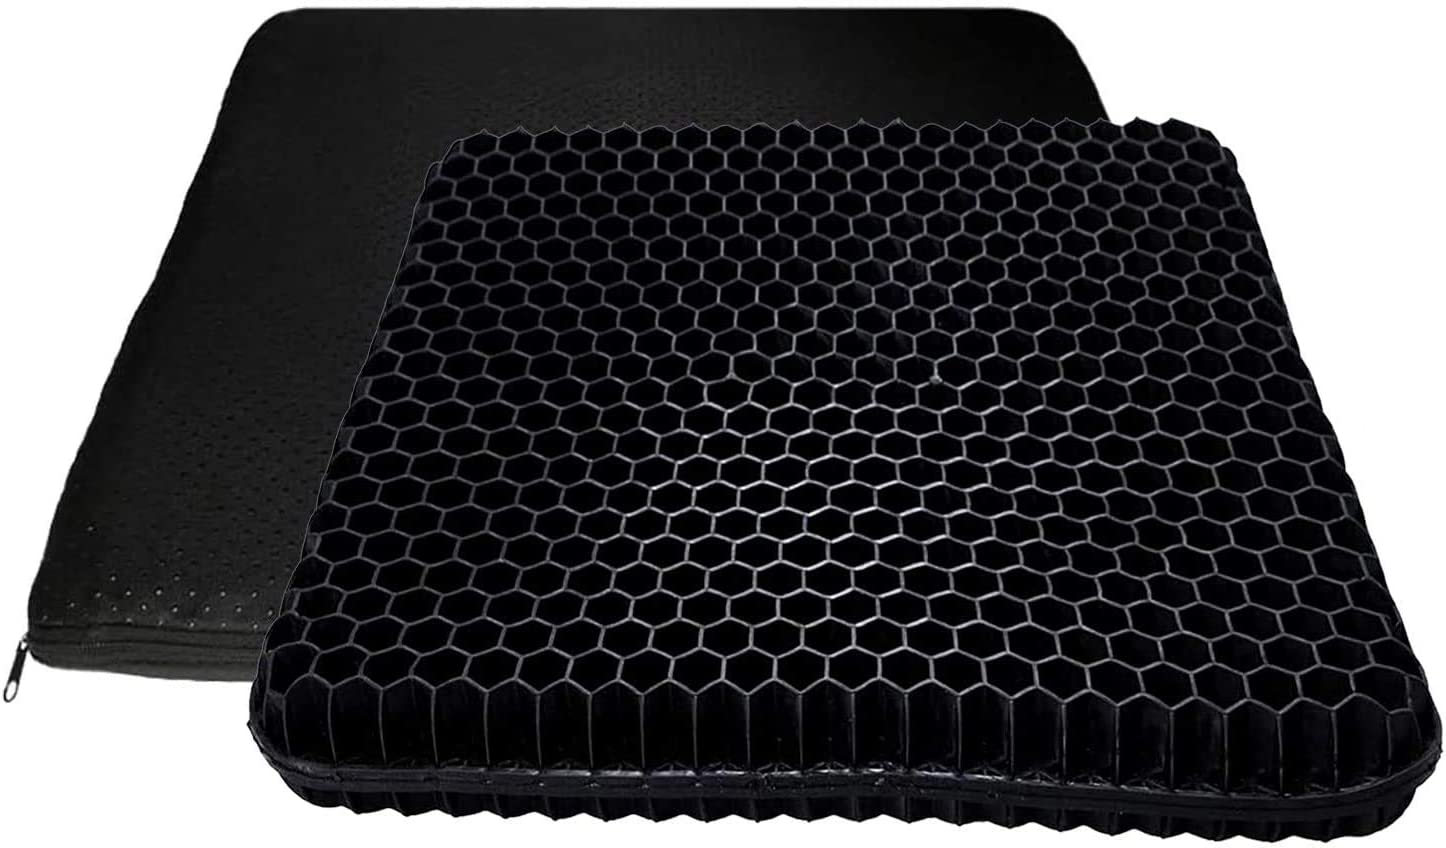 Gel Seat Cushion, 2020 The Latest Large Size Honeycomb Design Cushion Double Thick Seat Cushion with Non-Slip Cover Super Breathable Gel Cushion for Back Painr Home Office Chair Car Wheelchair(Black)